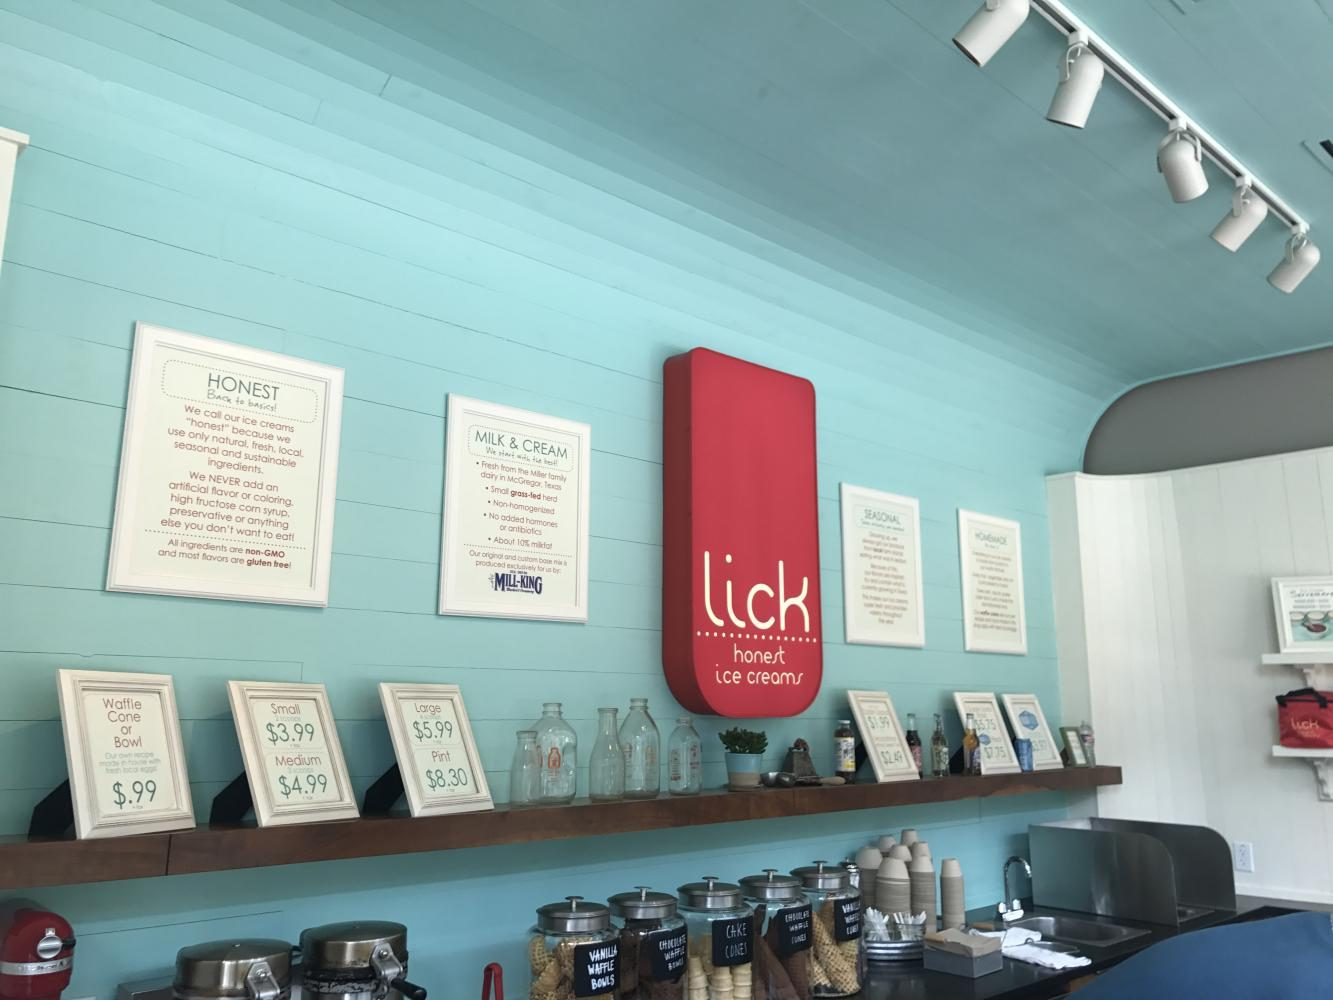 Lick is a Popular Ice Cream Shop that uses Non-artificial Flavors